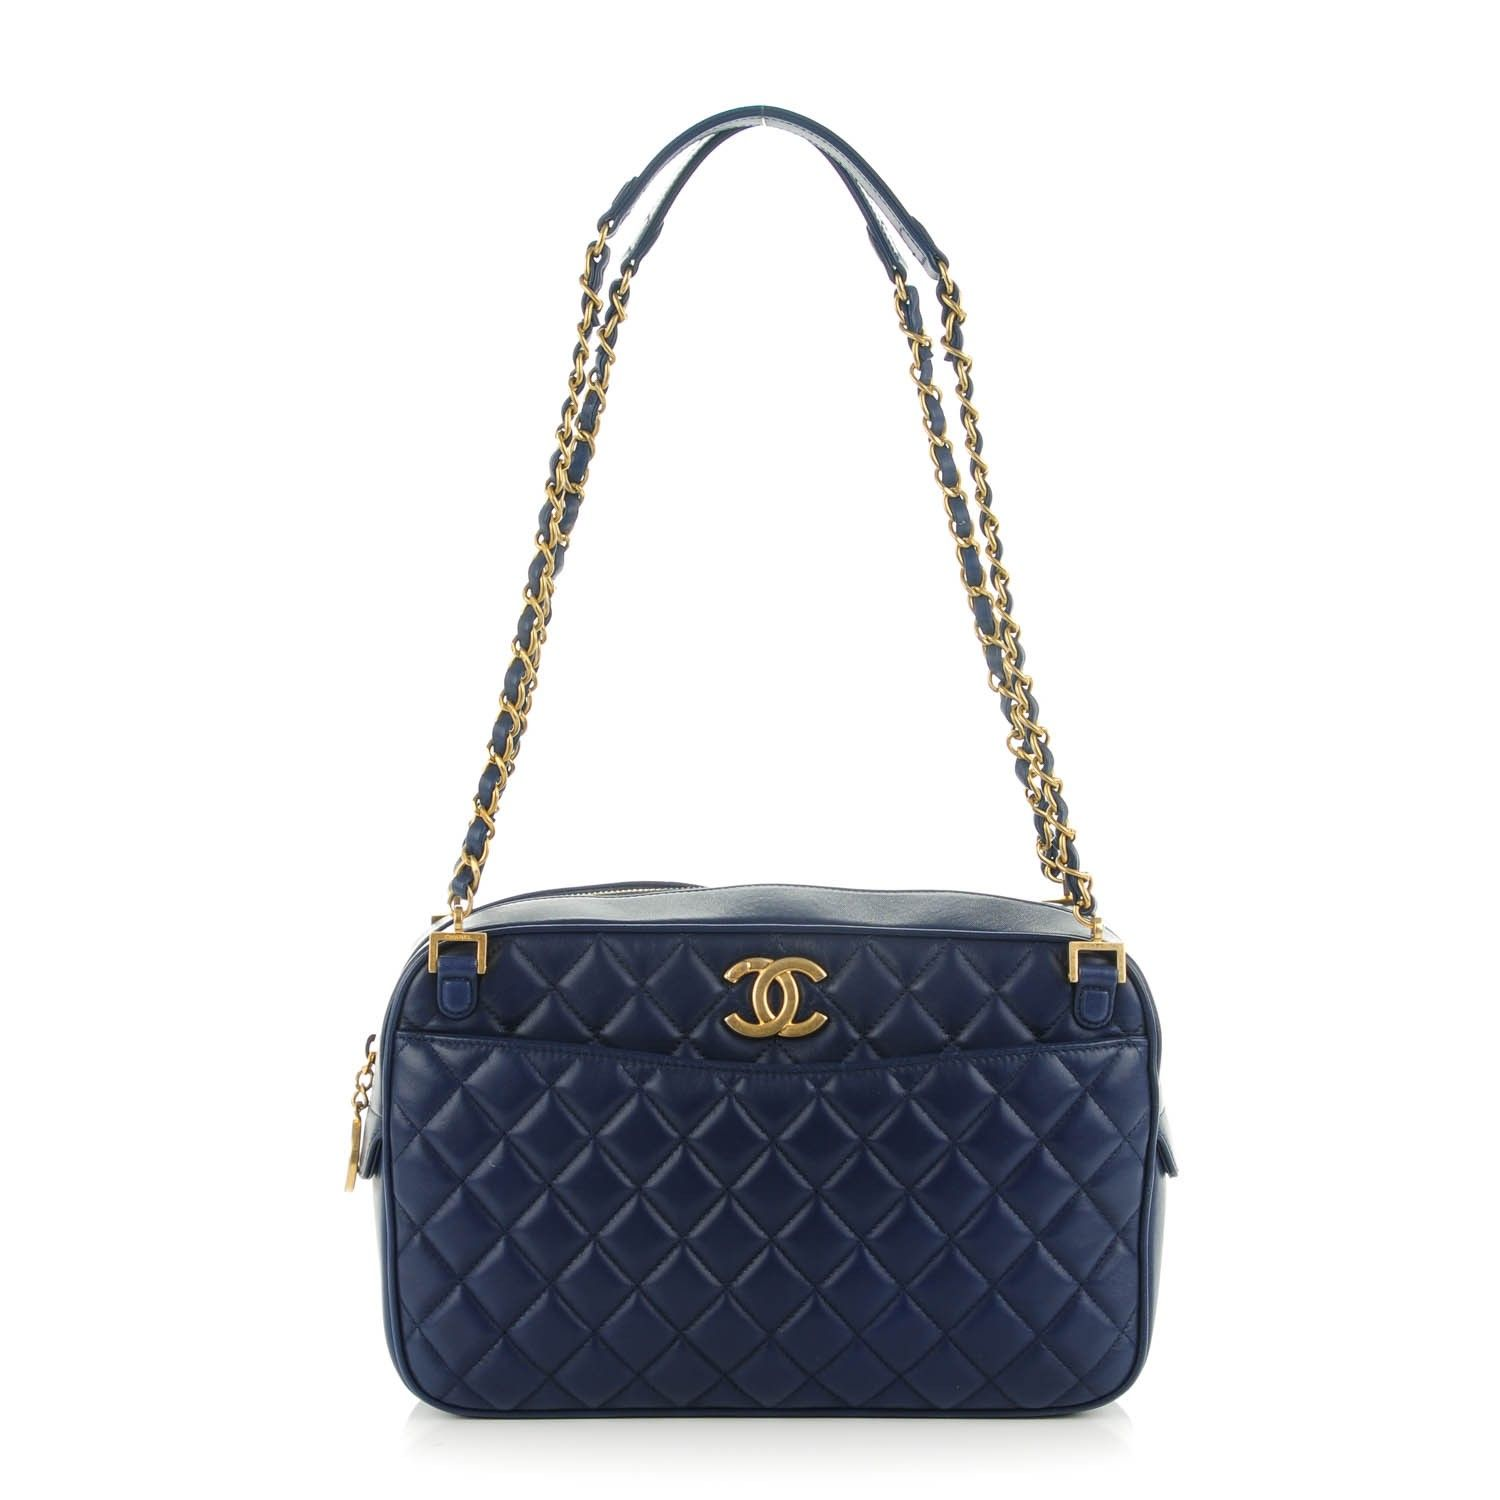 4da6926f17c8 This is an authentic CHANEL Lambskin Quilted Large CC Crown Camera Case in  Blue. The